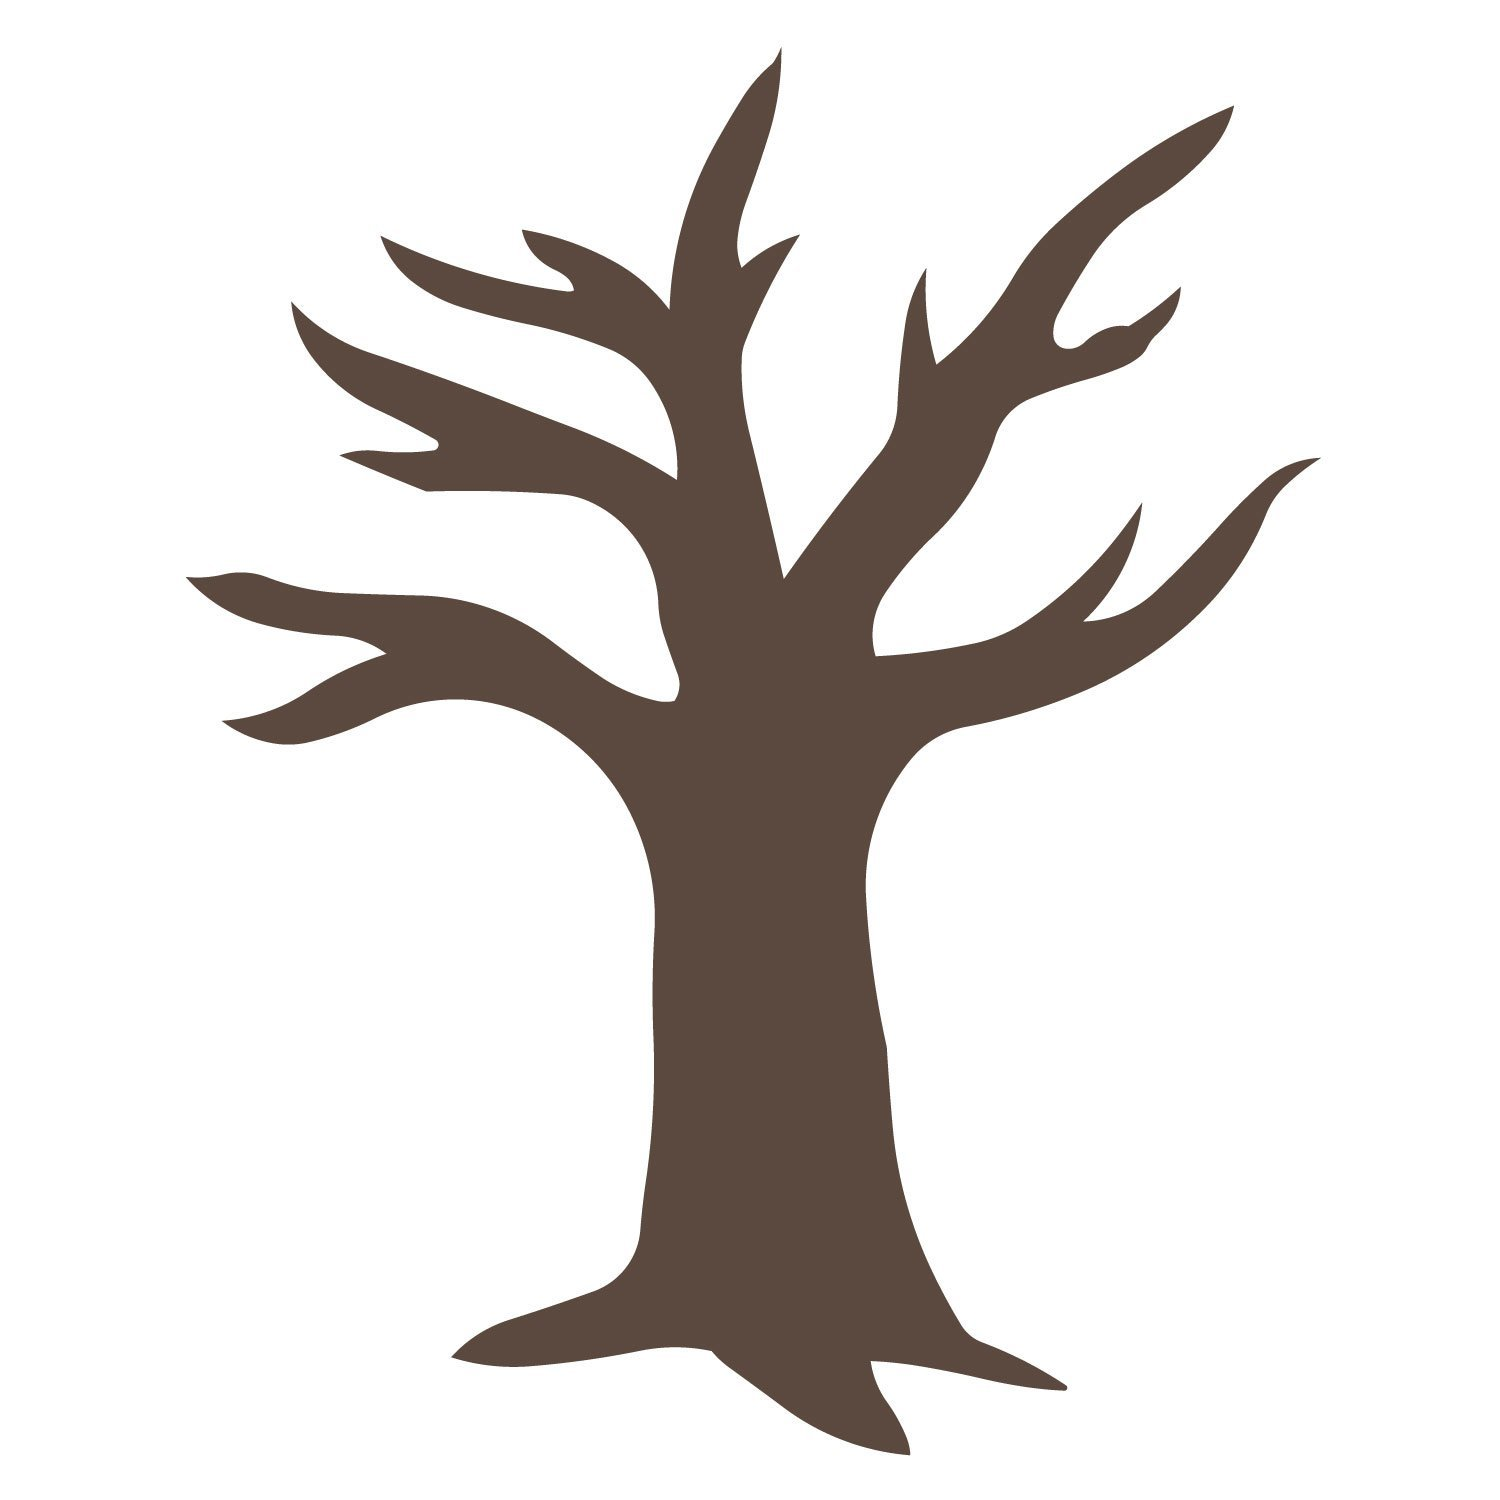 Tree no leaves clipart 4 » Clipart Portal.